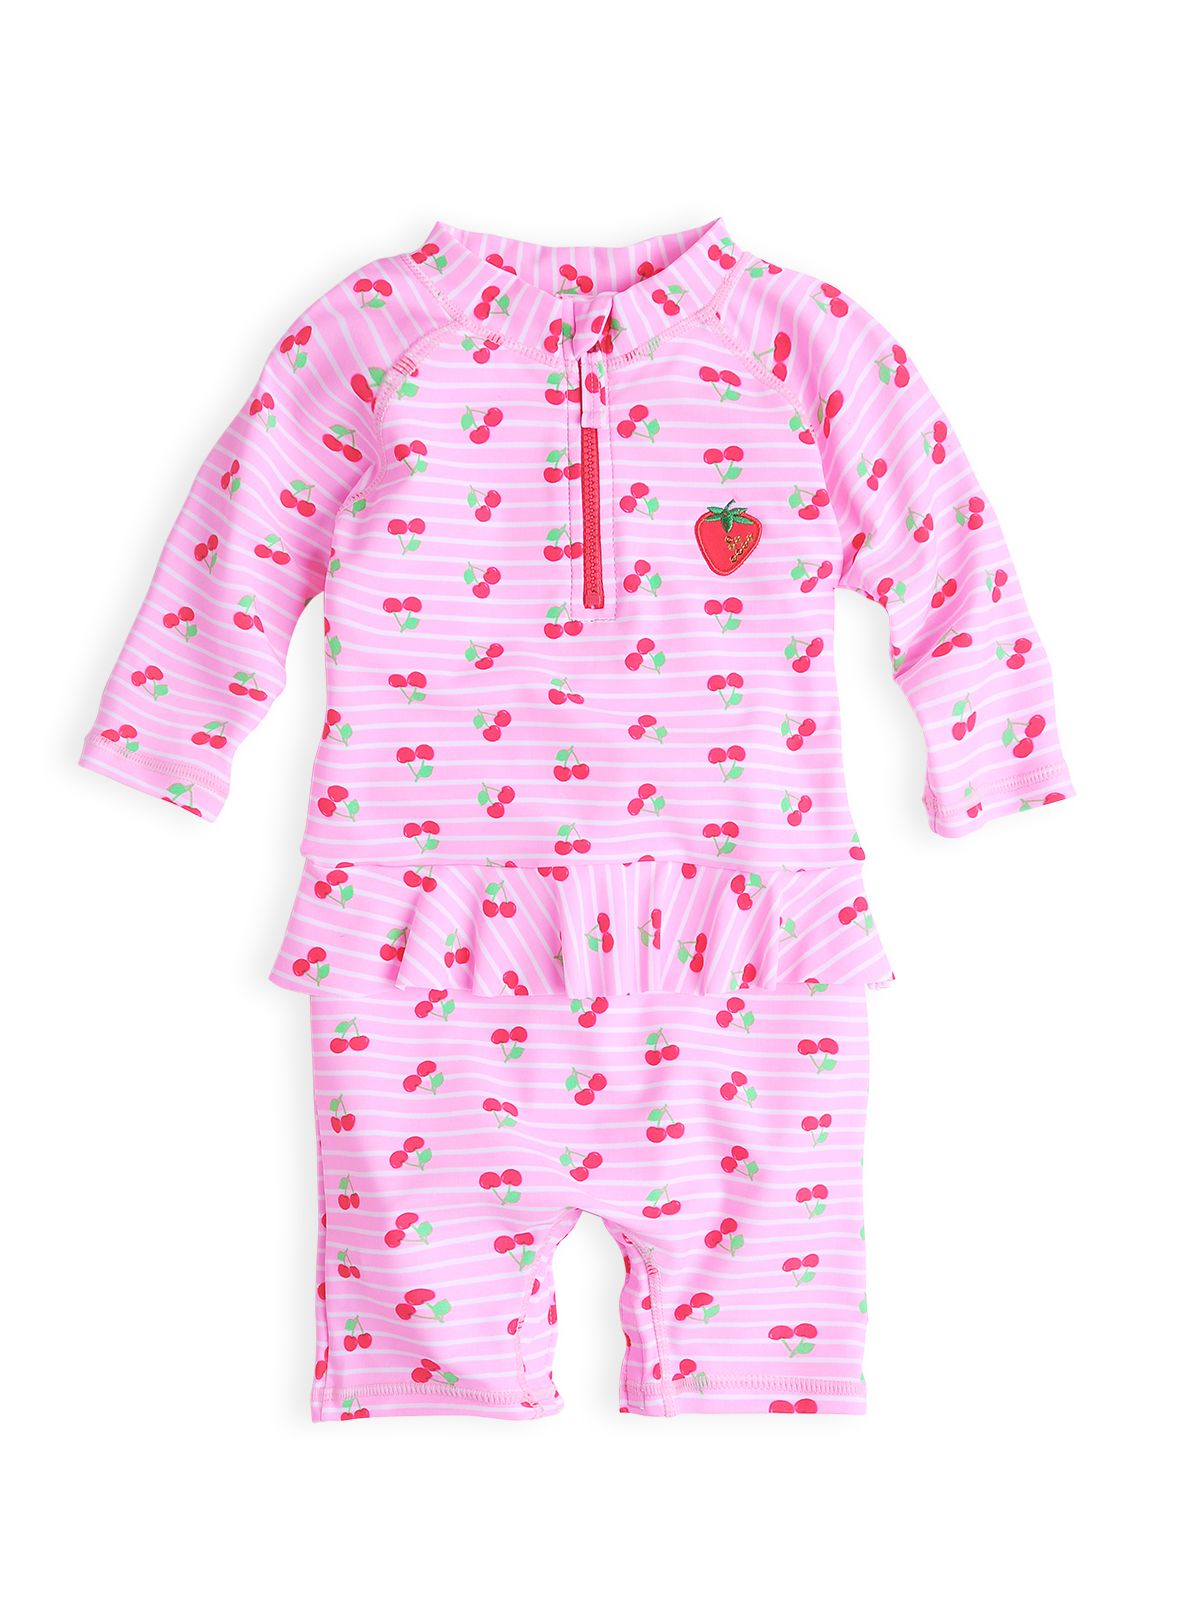 Baby girls cherry frilled sunsuit